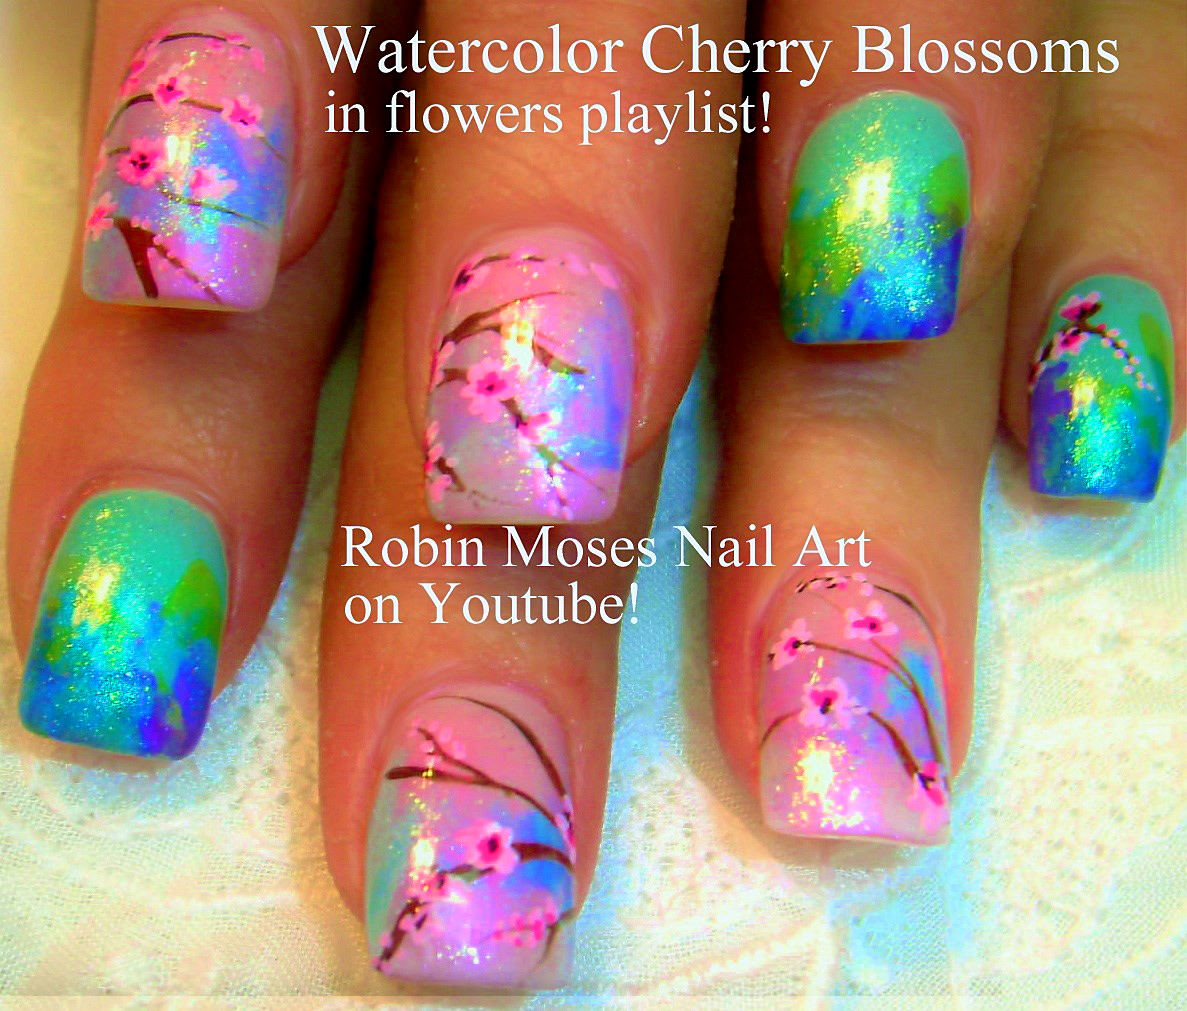 Robin moses nail art cherry blossom nail art 2016 full length mint cherry blossom nail art design tutorial prinsesfo Gallery